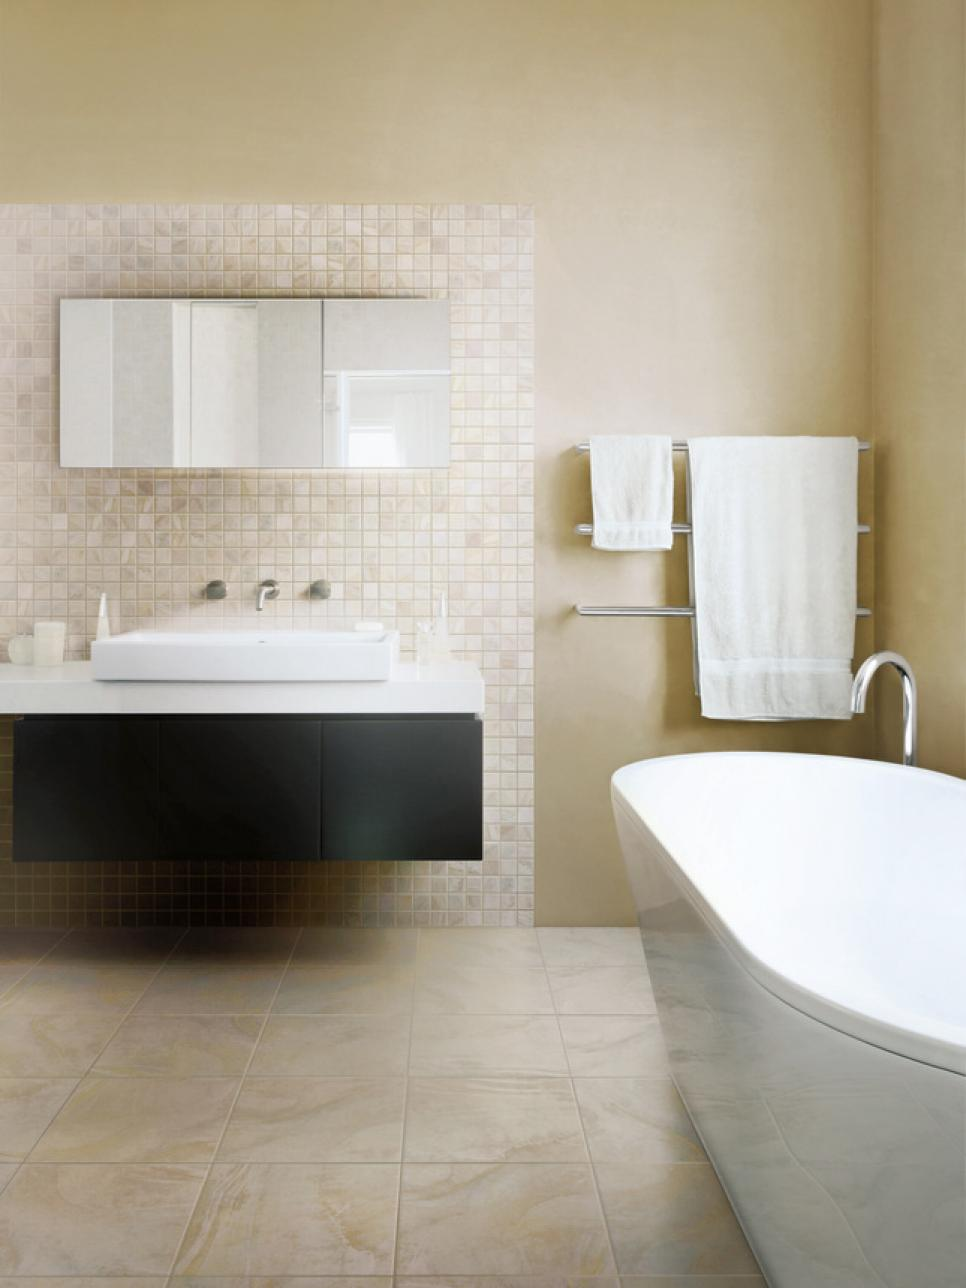 Bathroom Ceramic Tile Images : Bathroom flooring styles and trends hgtv